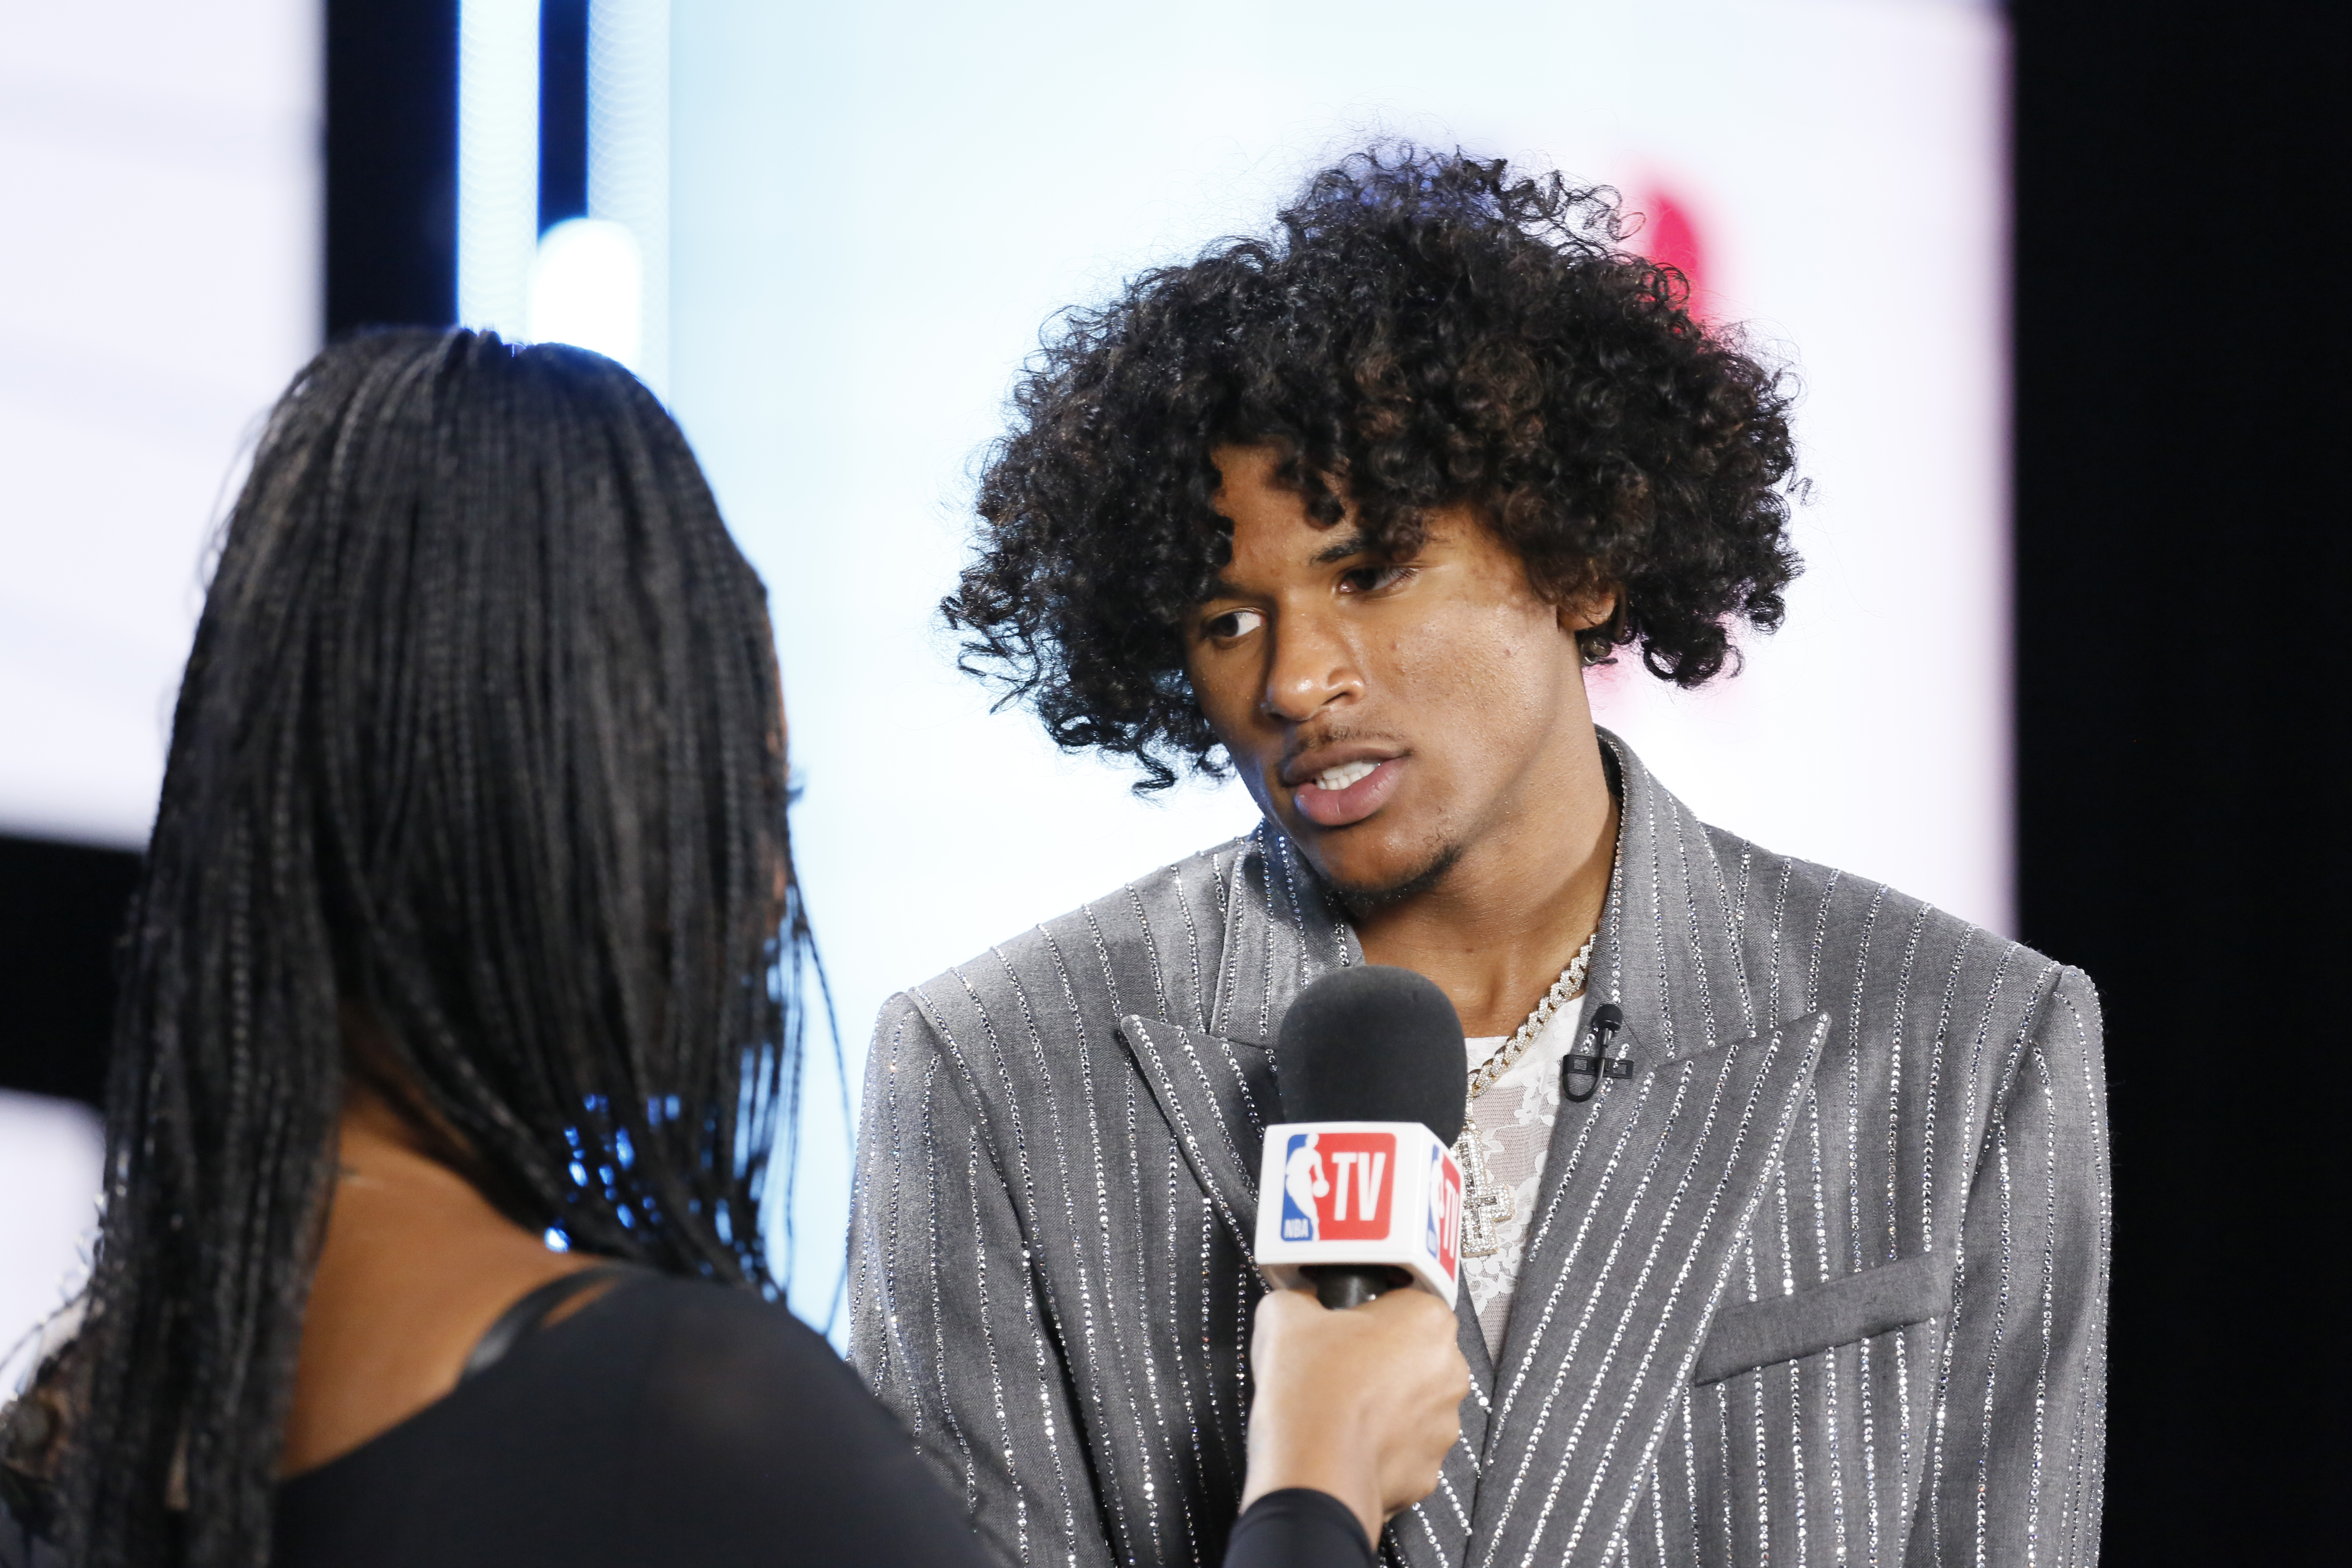 Jalen Green is interviewed before the 2021 NBA Draft on July 29, 2021 at Barclays Center in Brooklyn, New York.